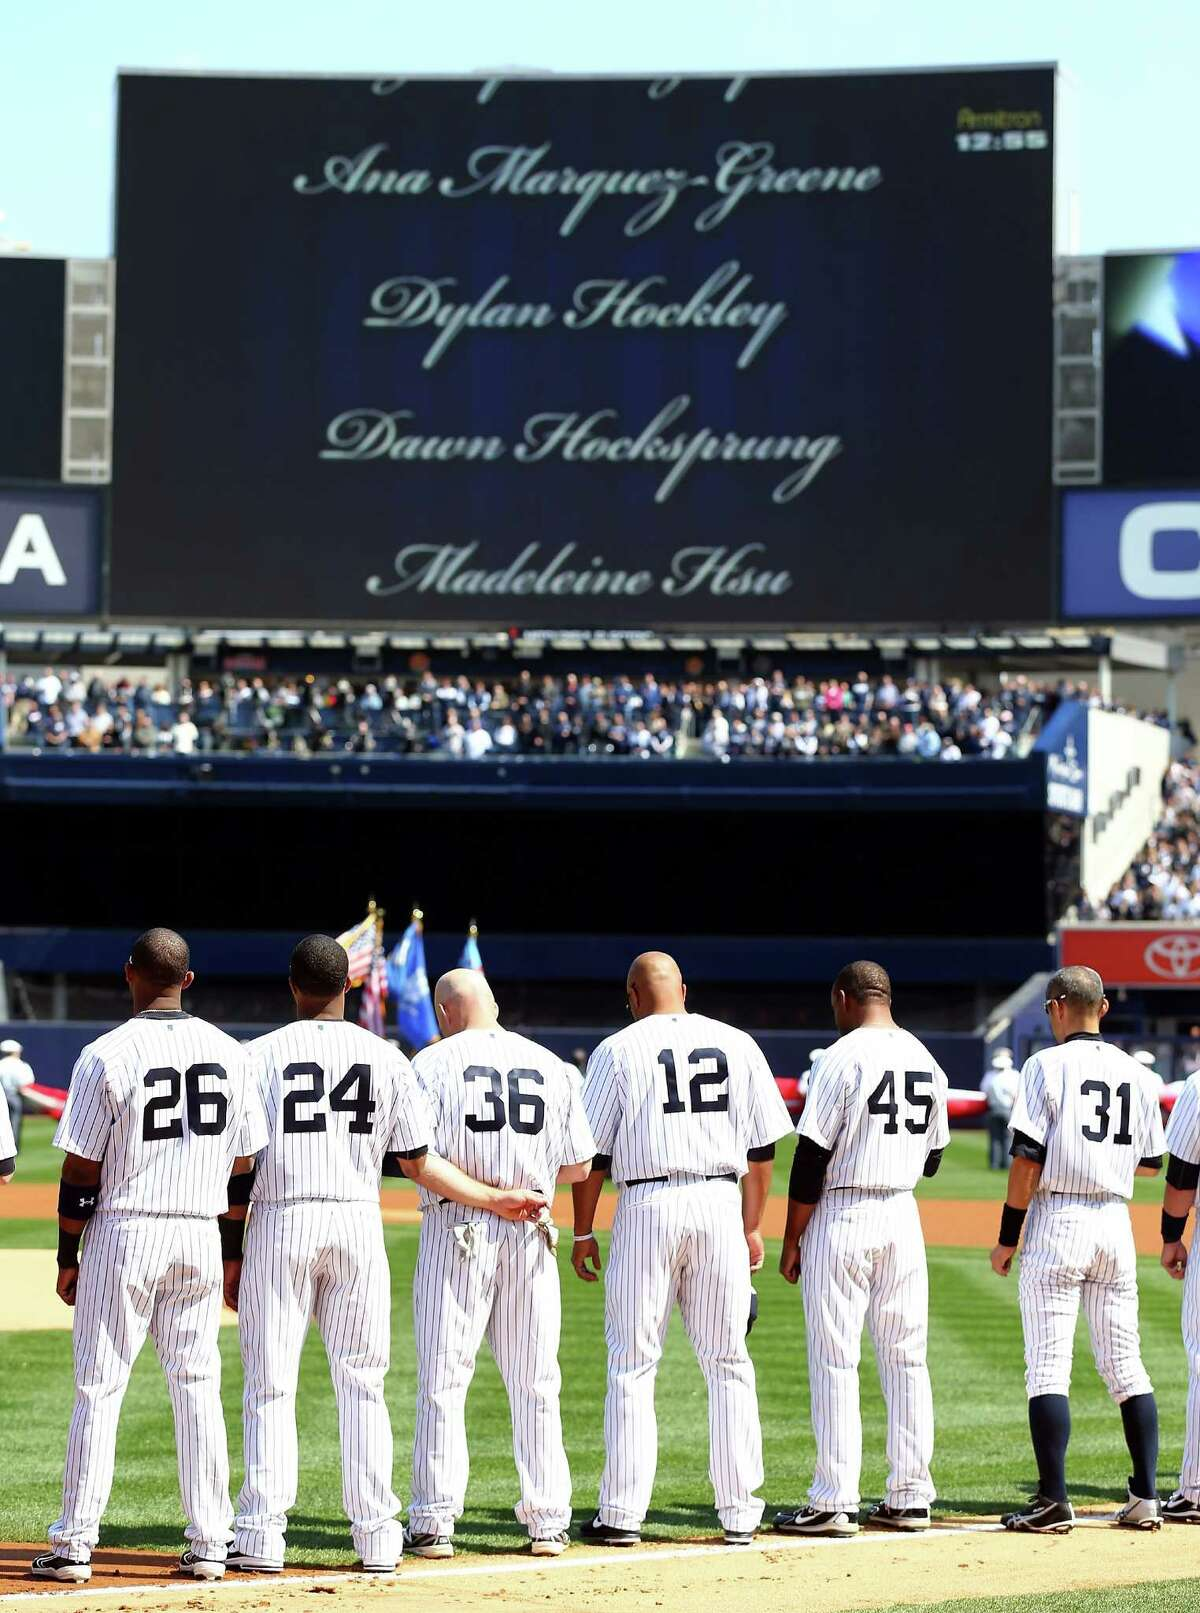 sox yankees searching soul bronx gregory richard together stand names spirits yanks queens connecticut sandy hook york